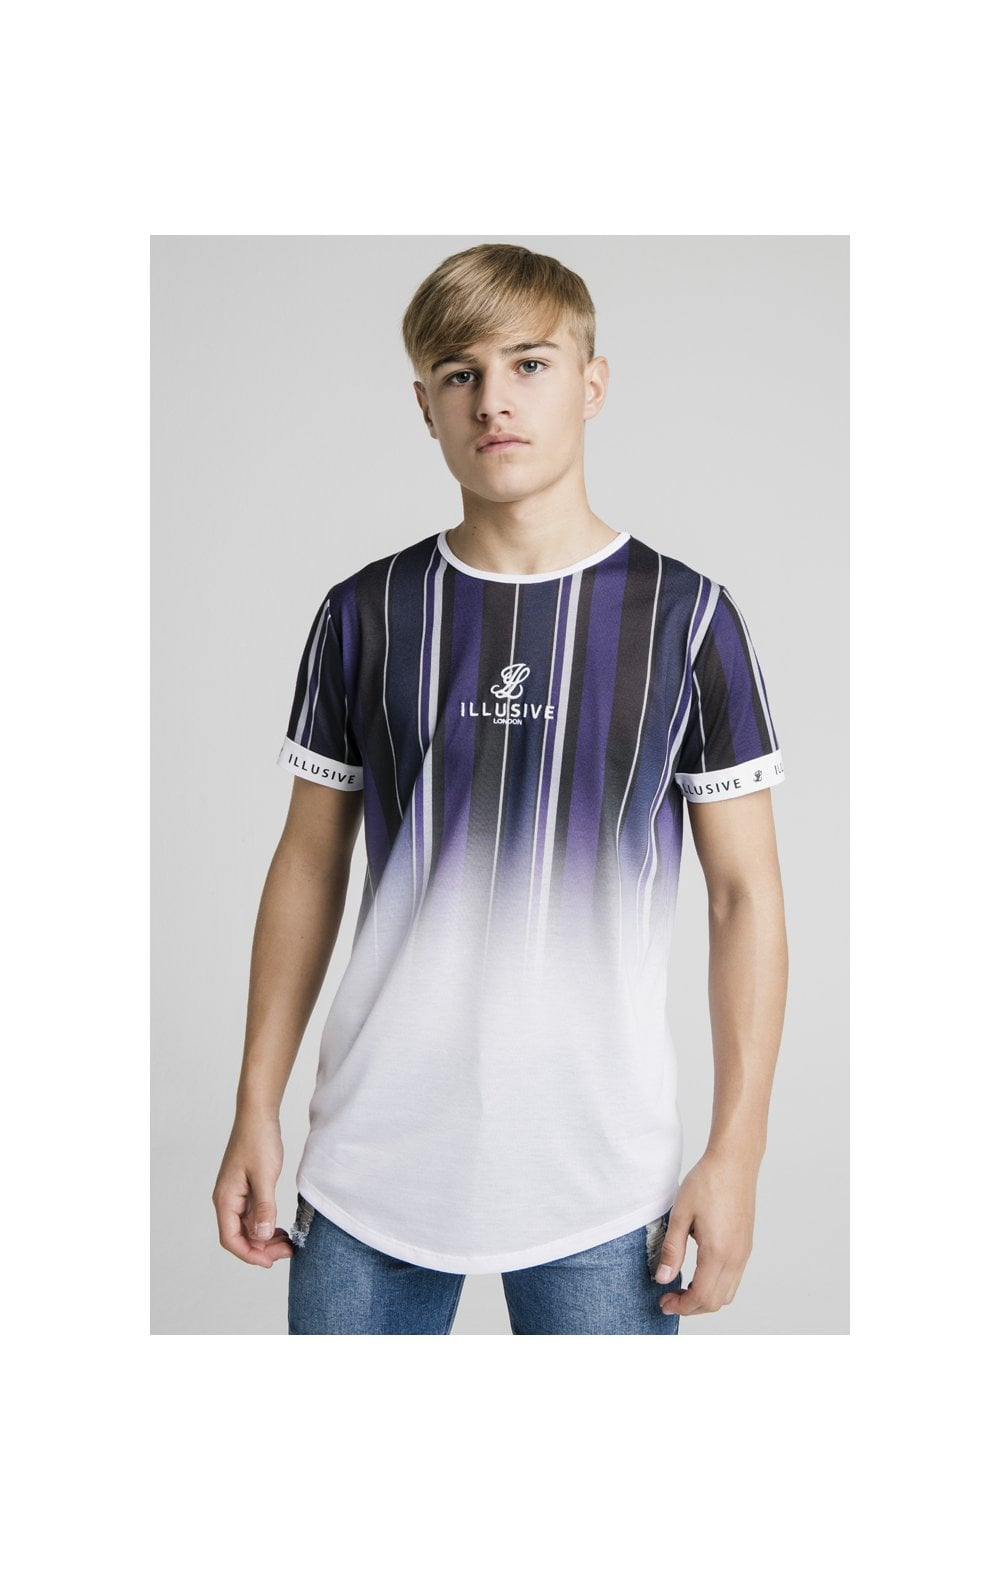 Illusive London Fade Stripe Tech Tee - Navy, Purple, Grey & White (1)